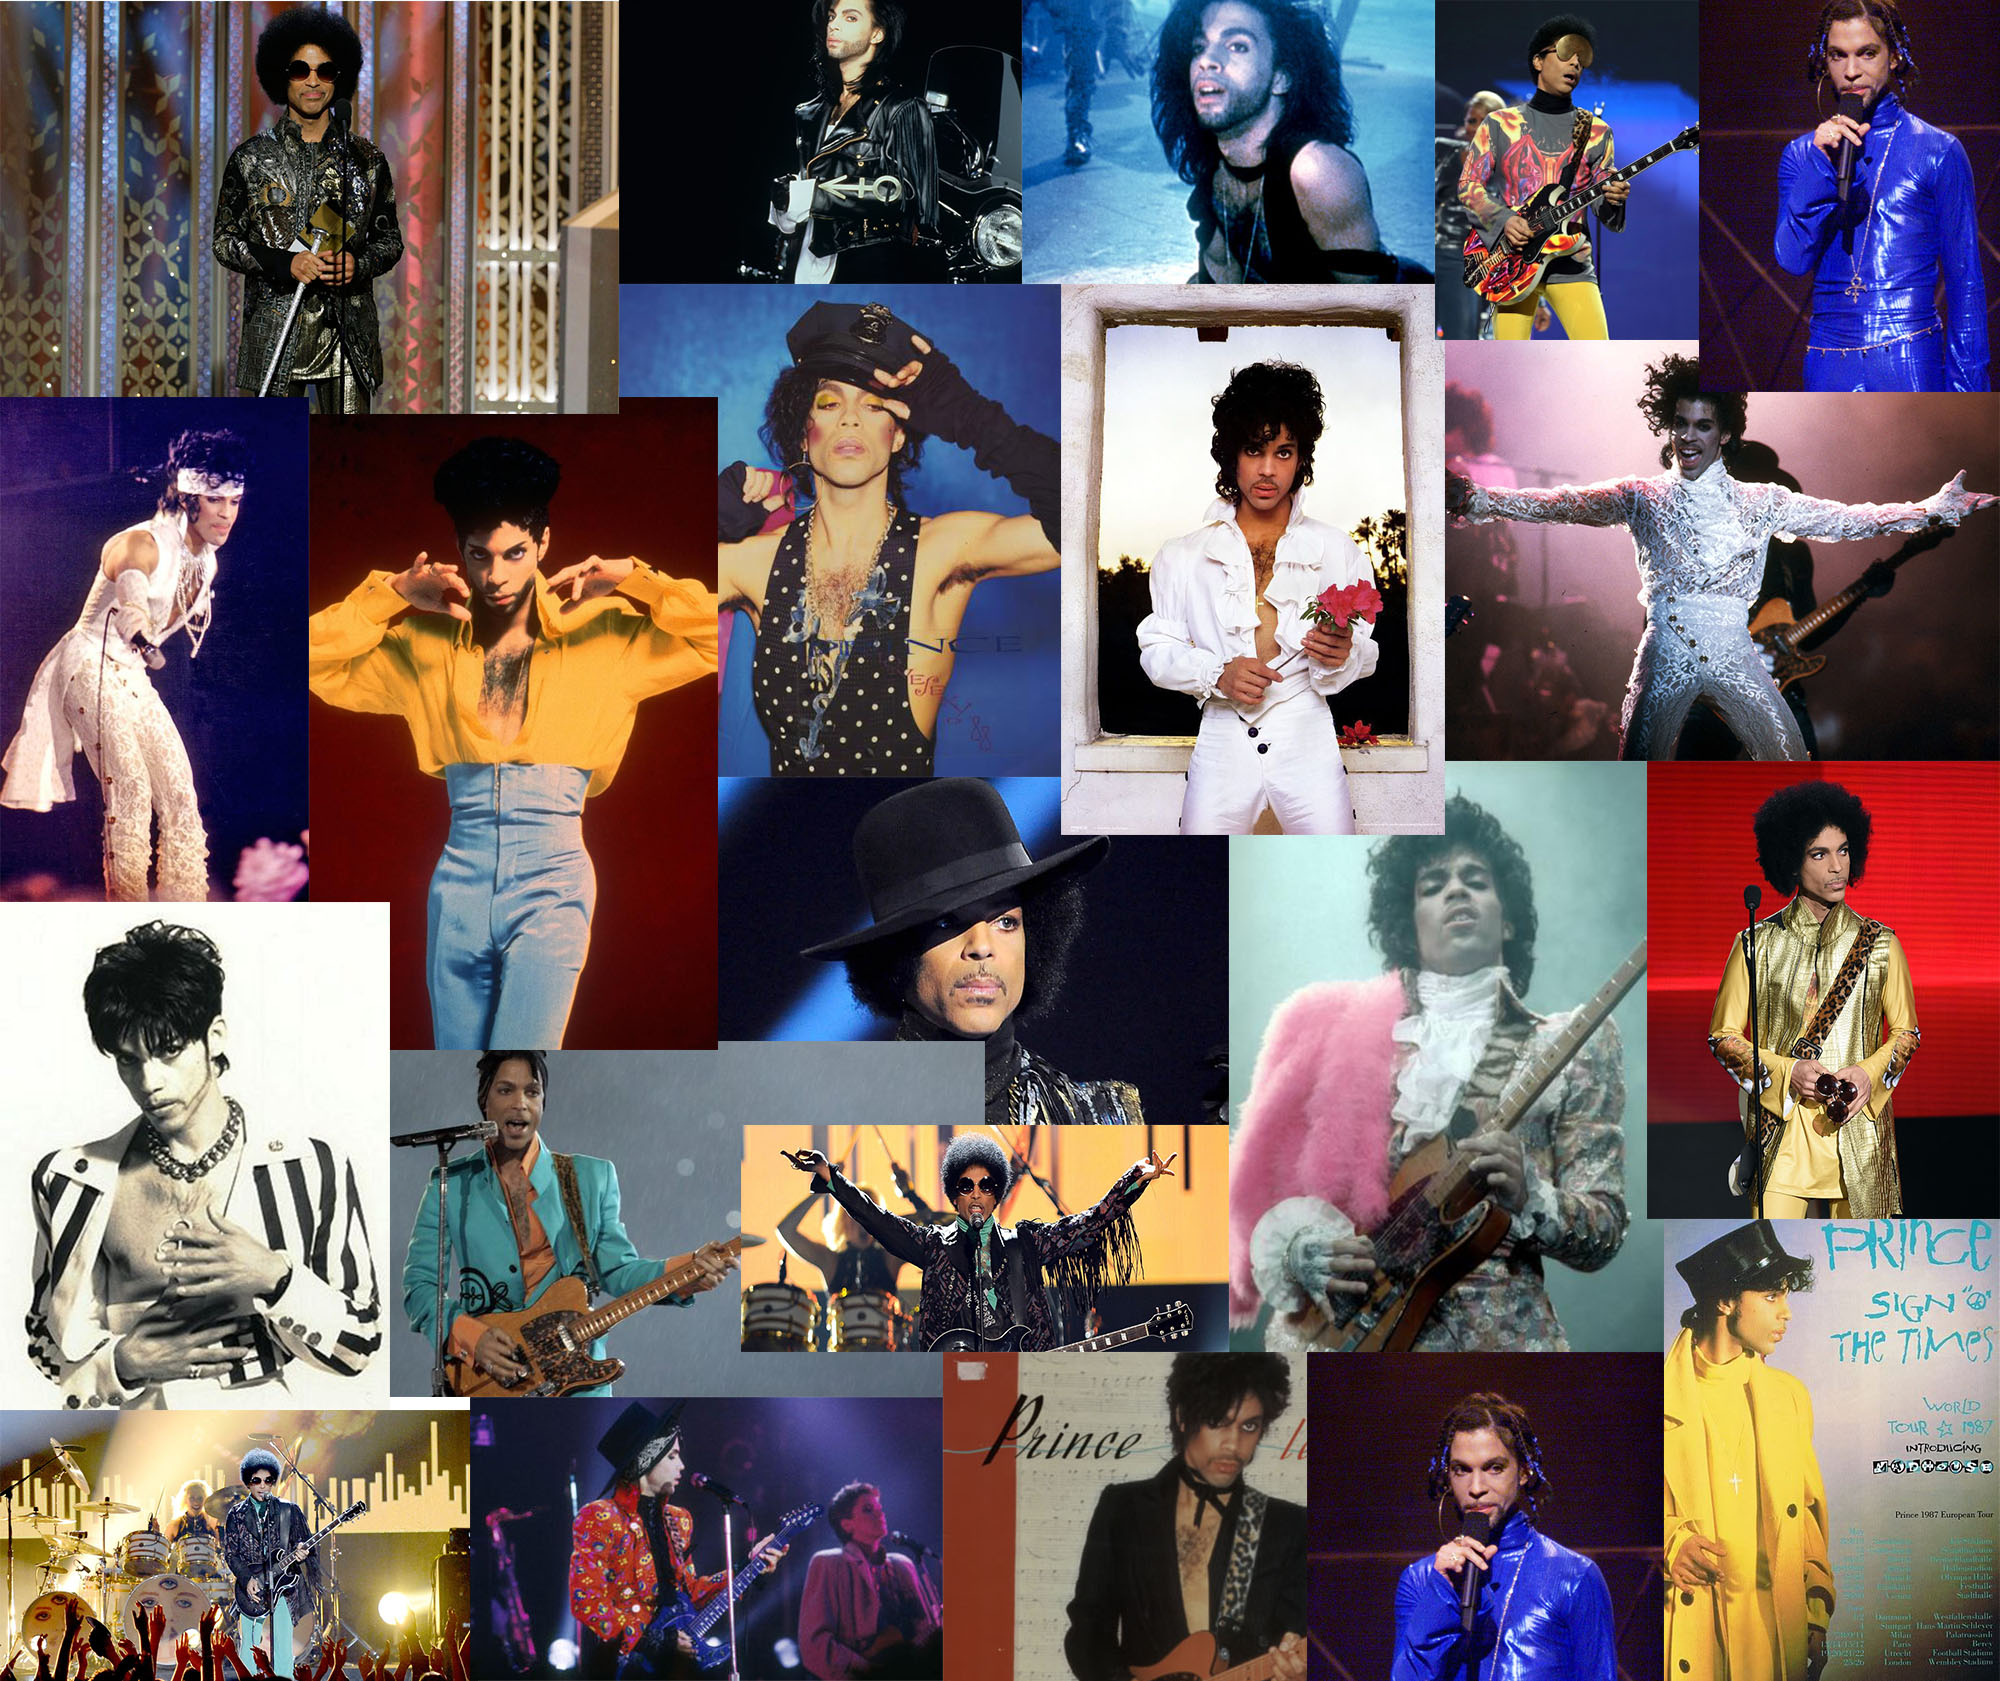 princecollage